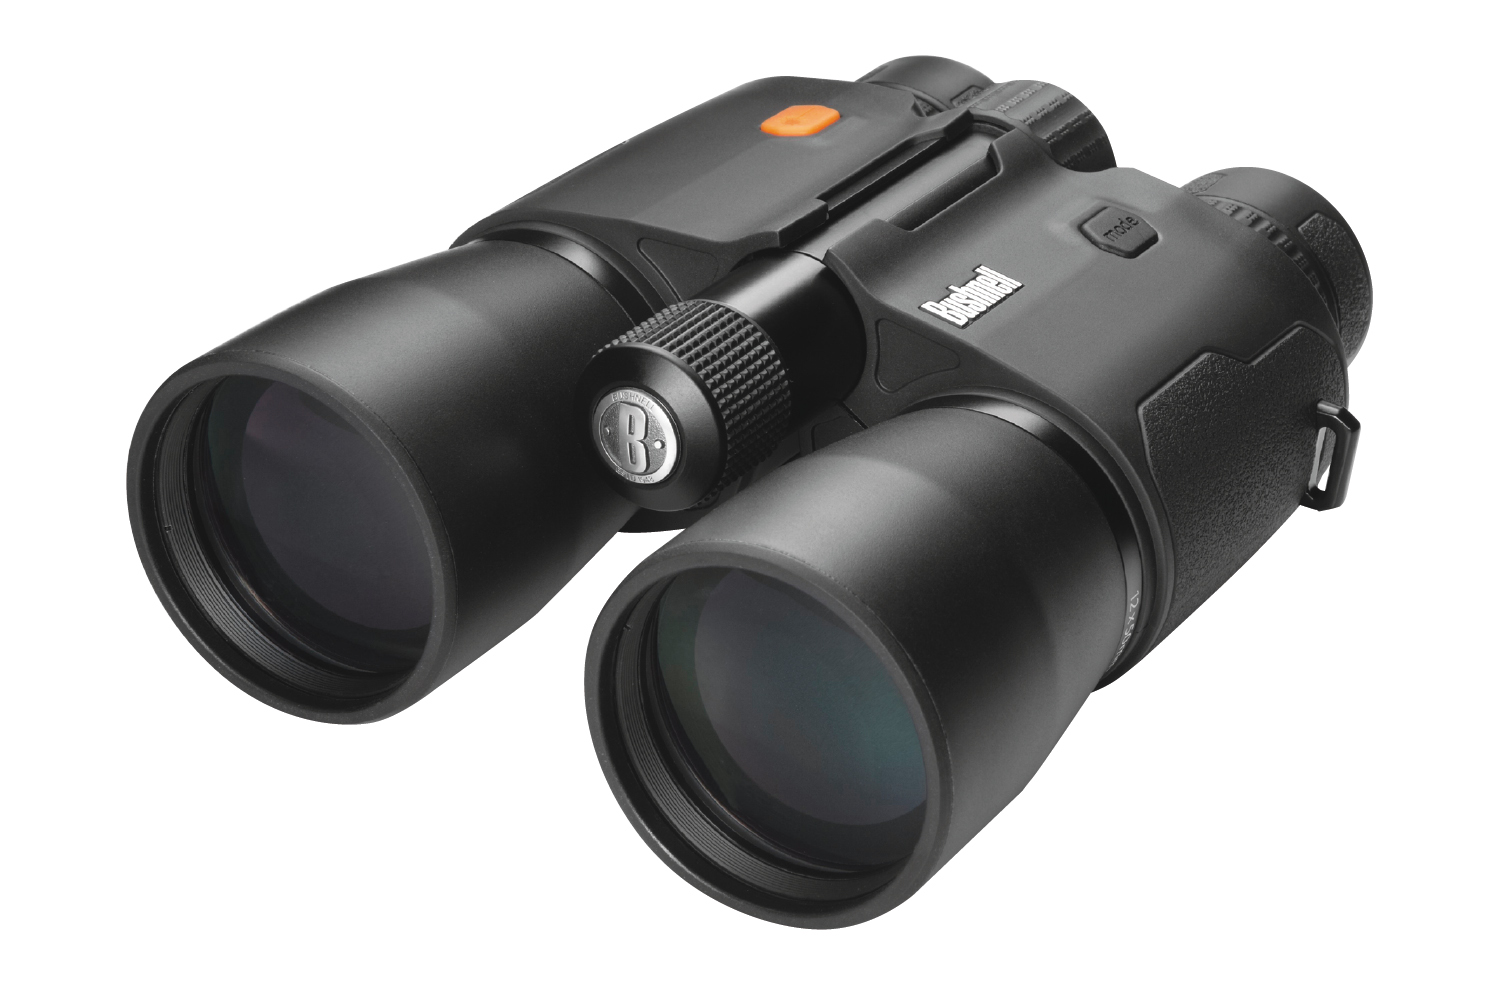 Бинокль Bushnell Fusion 1 Mile Arc 12x50 (+ Power Bank в подарок!) бинокль bushnell engage 12x50